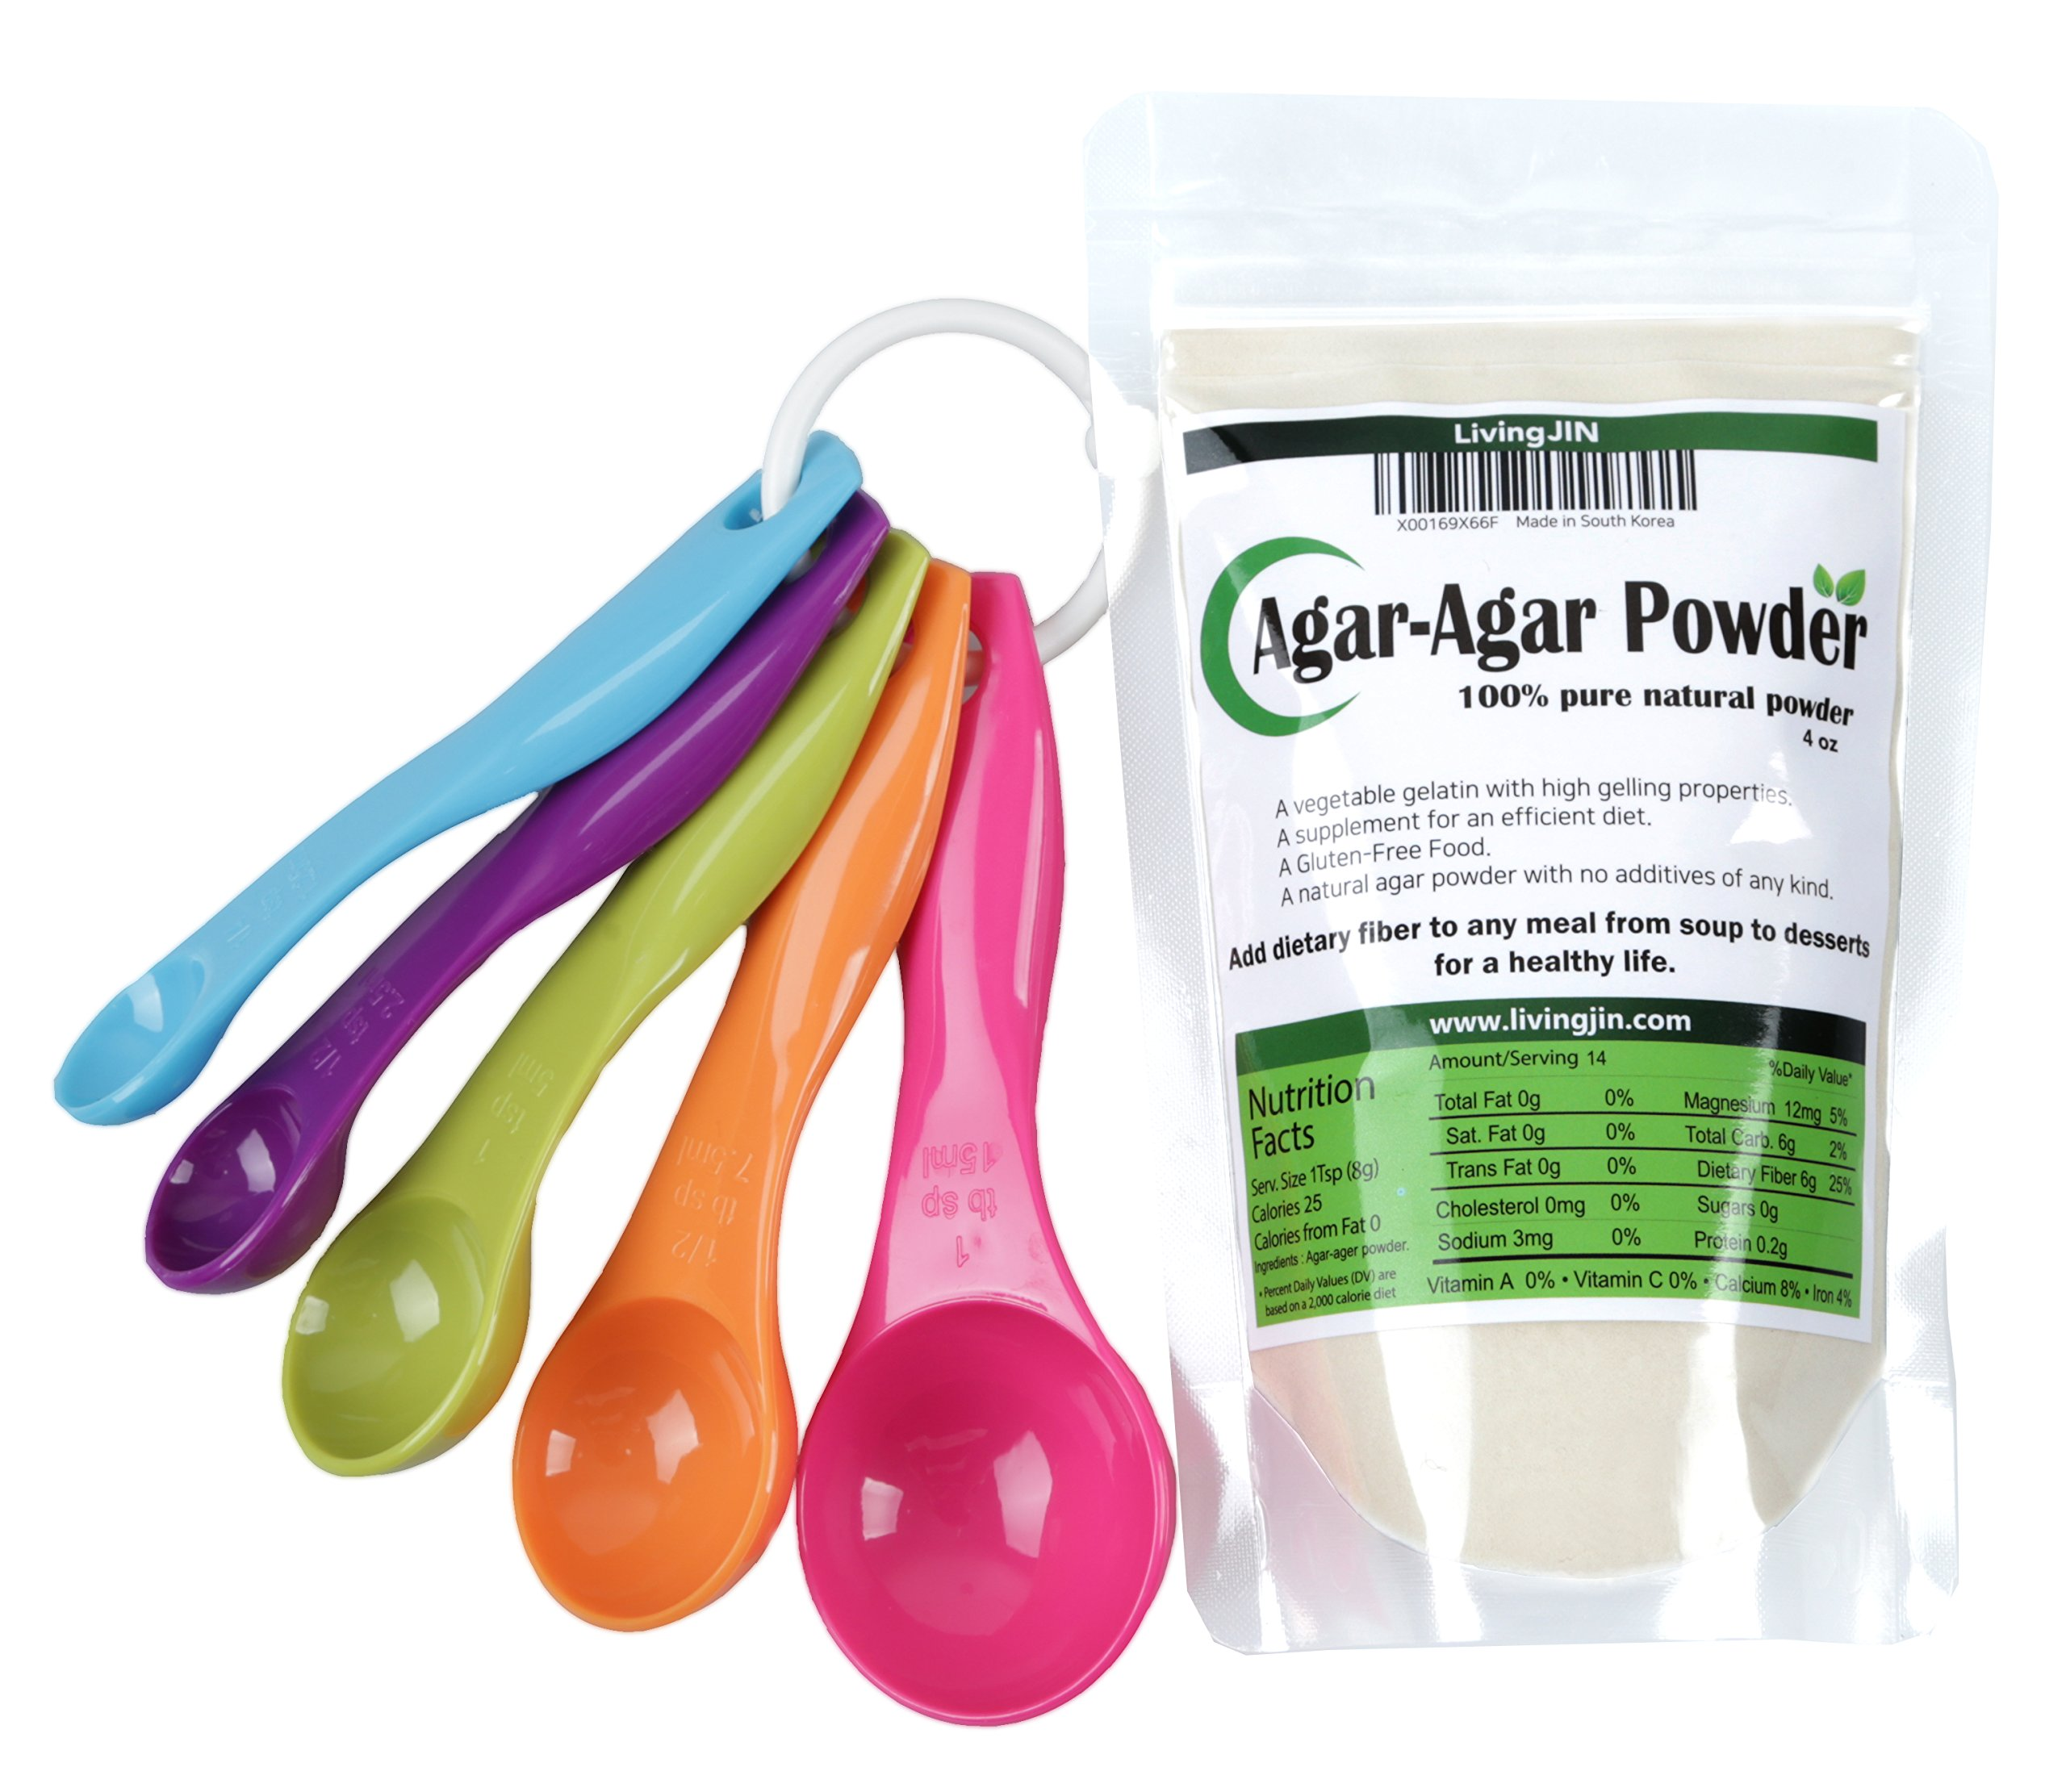 Agar Agar Powder 4oz and 5-Piece Measuring Spoon Set/Vegetable Gelatin Dietary Fiber [100% Natural Pure]